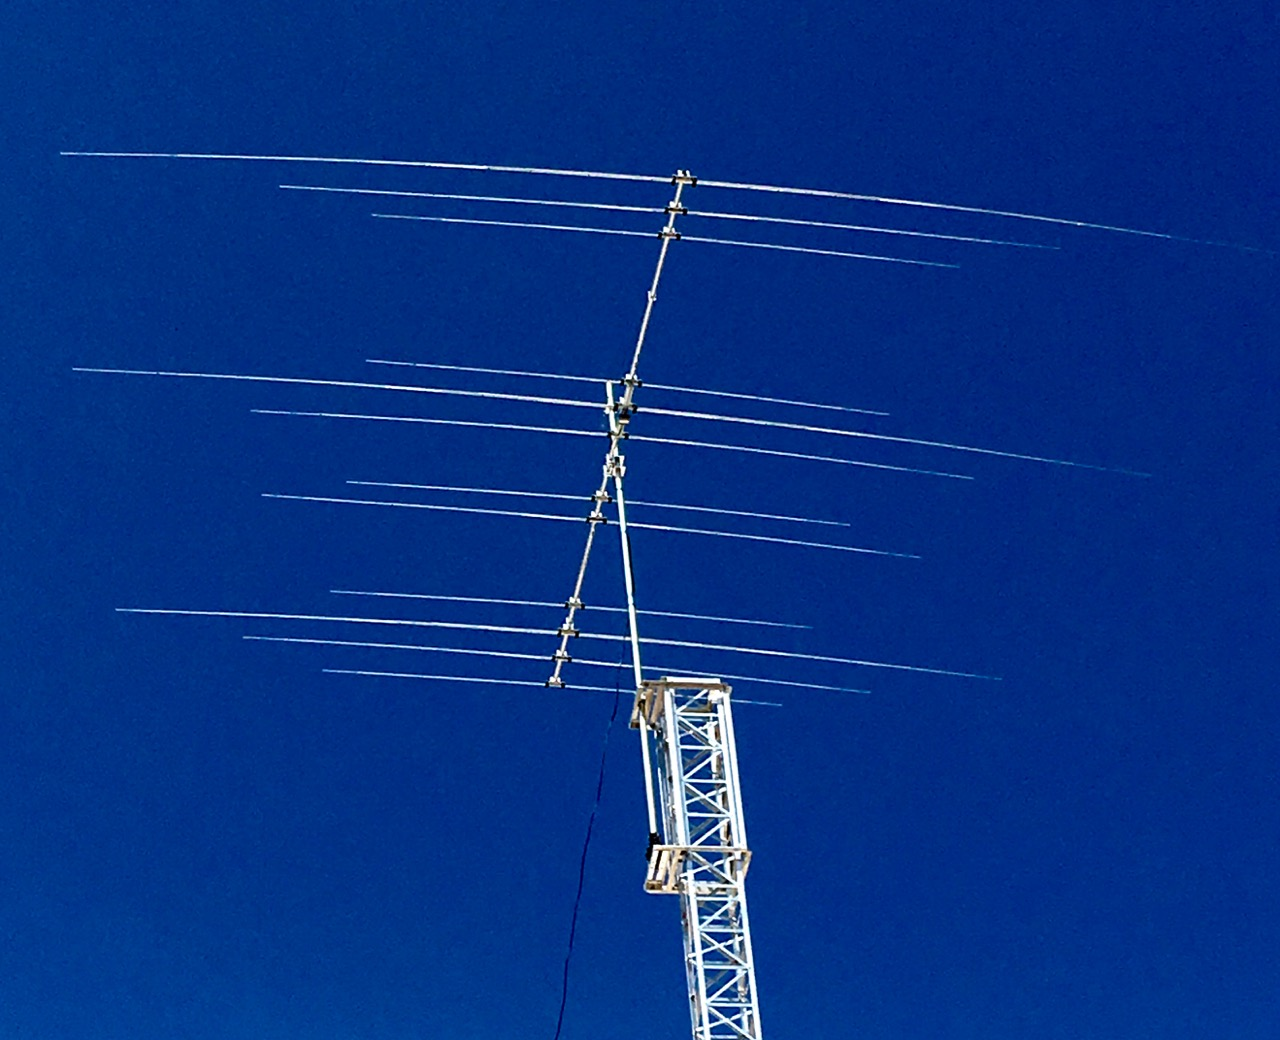 JK-Mid-Tri - Yagi antenna of 3 elements for the 20 m band,4